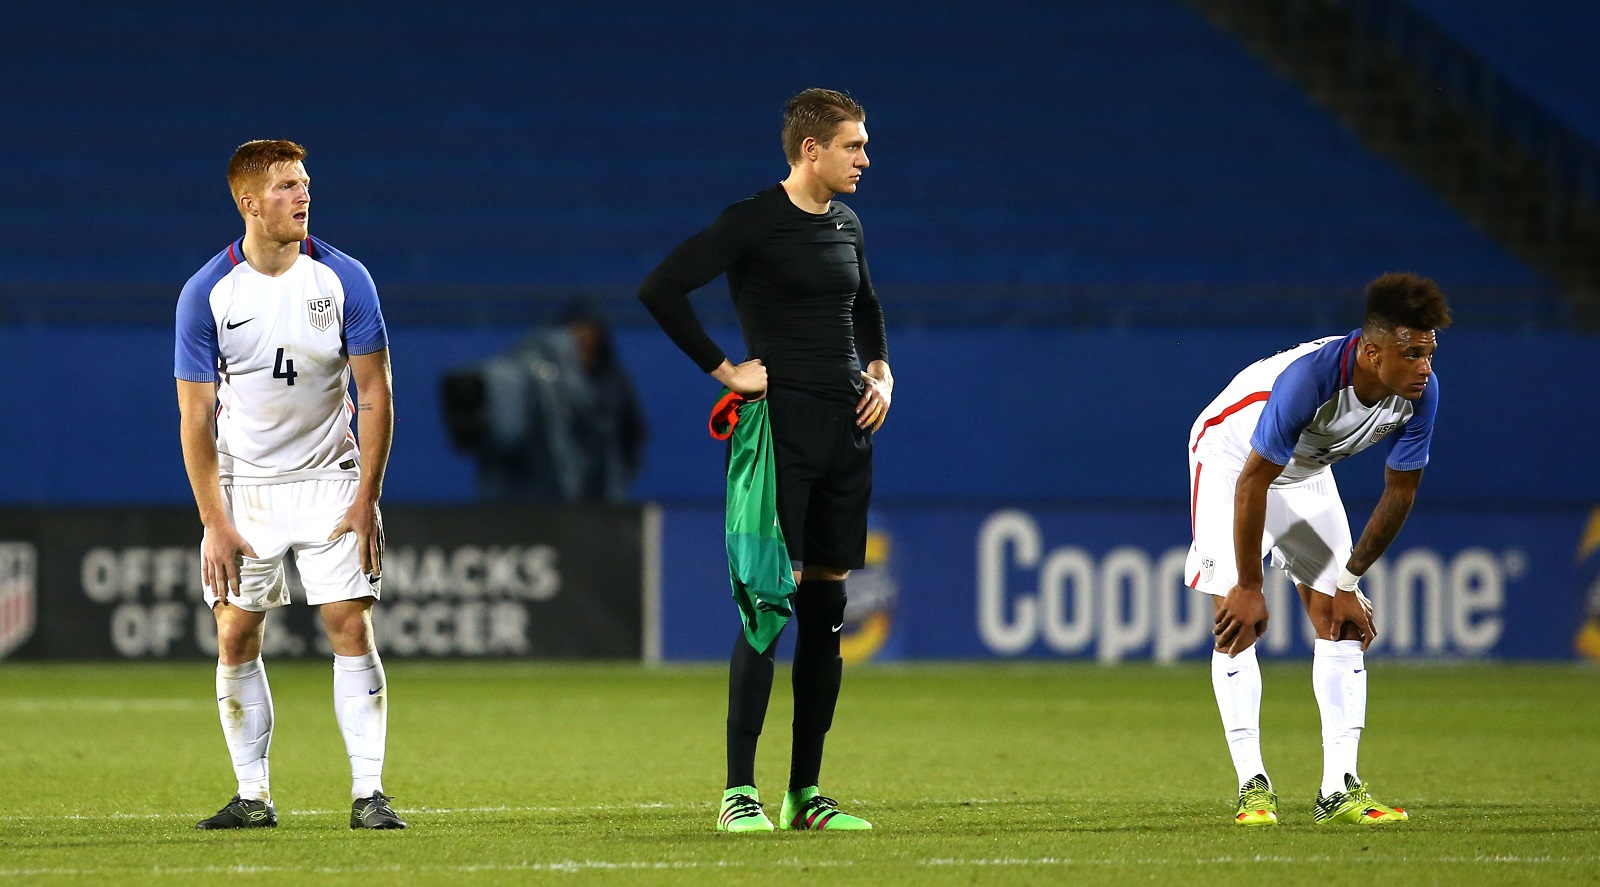 U.S. Soccer will miss the summer Olympics for the second consecutive cycle after dropping a two-leg playoff to Colombia, 3-2 on aggregate. (Getty Images)